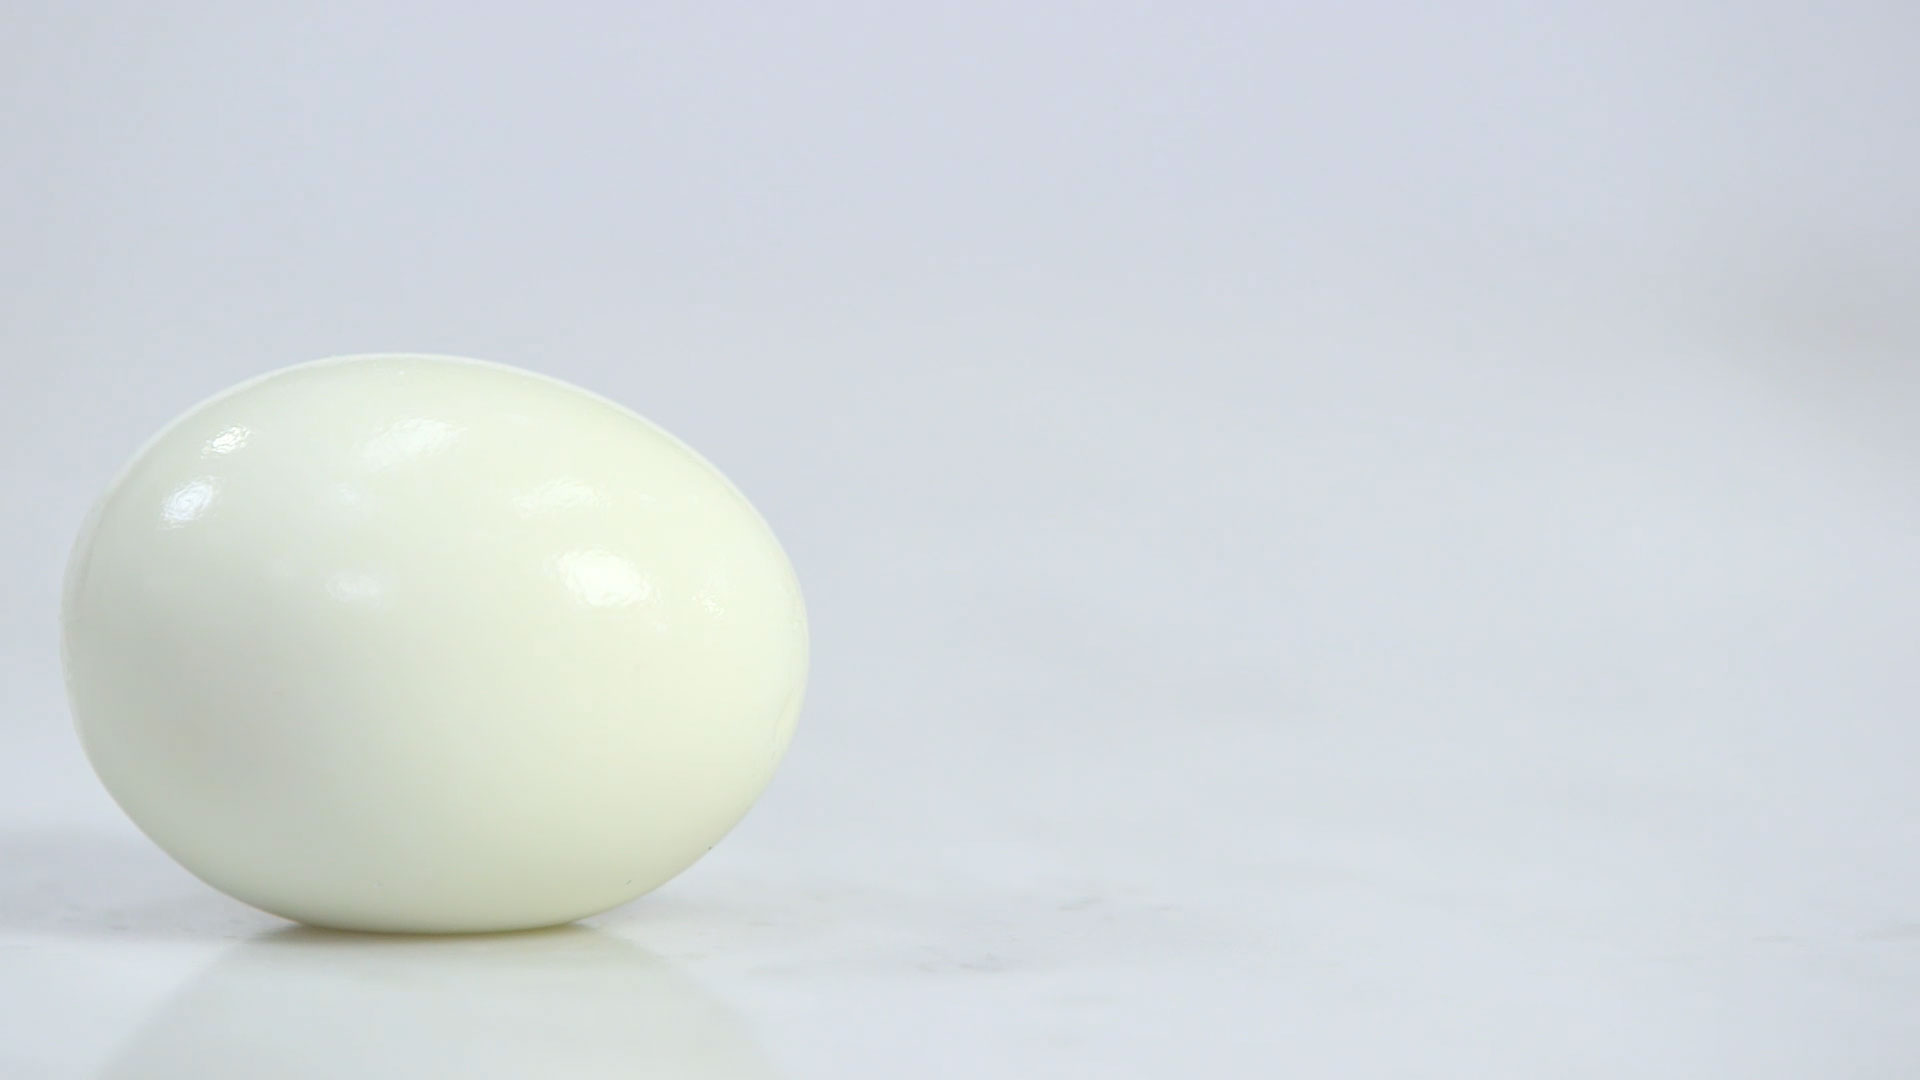 How To Hard-Boil An Egg Image